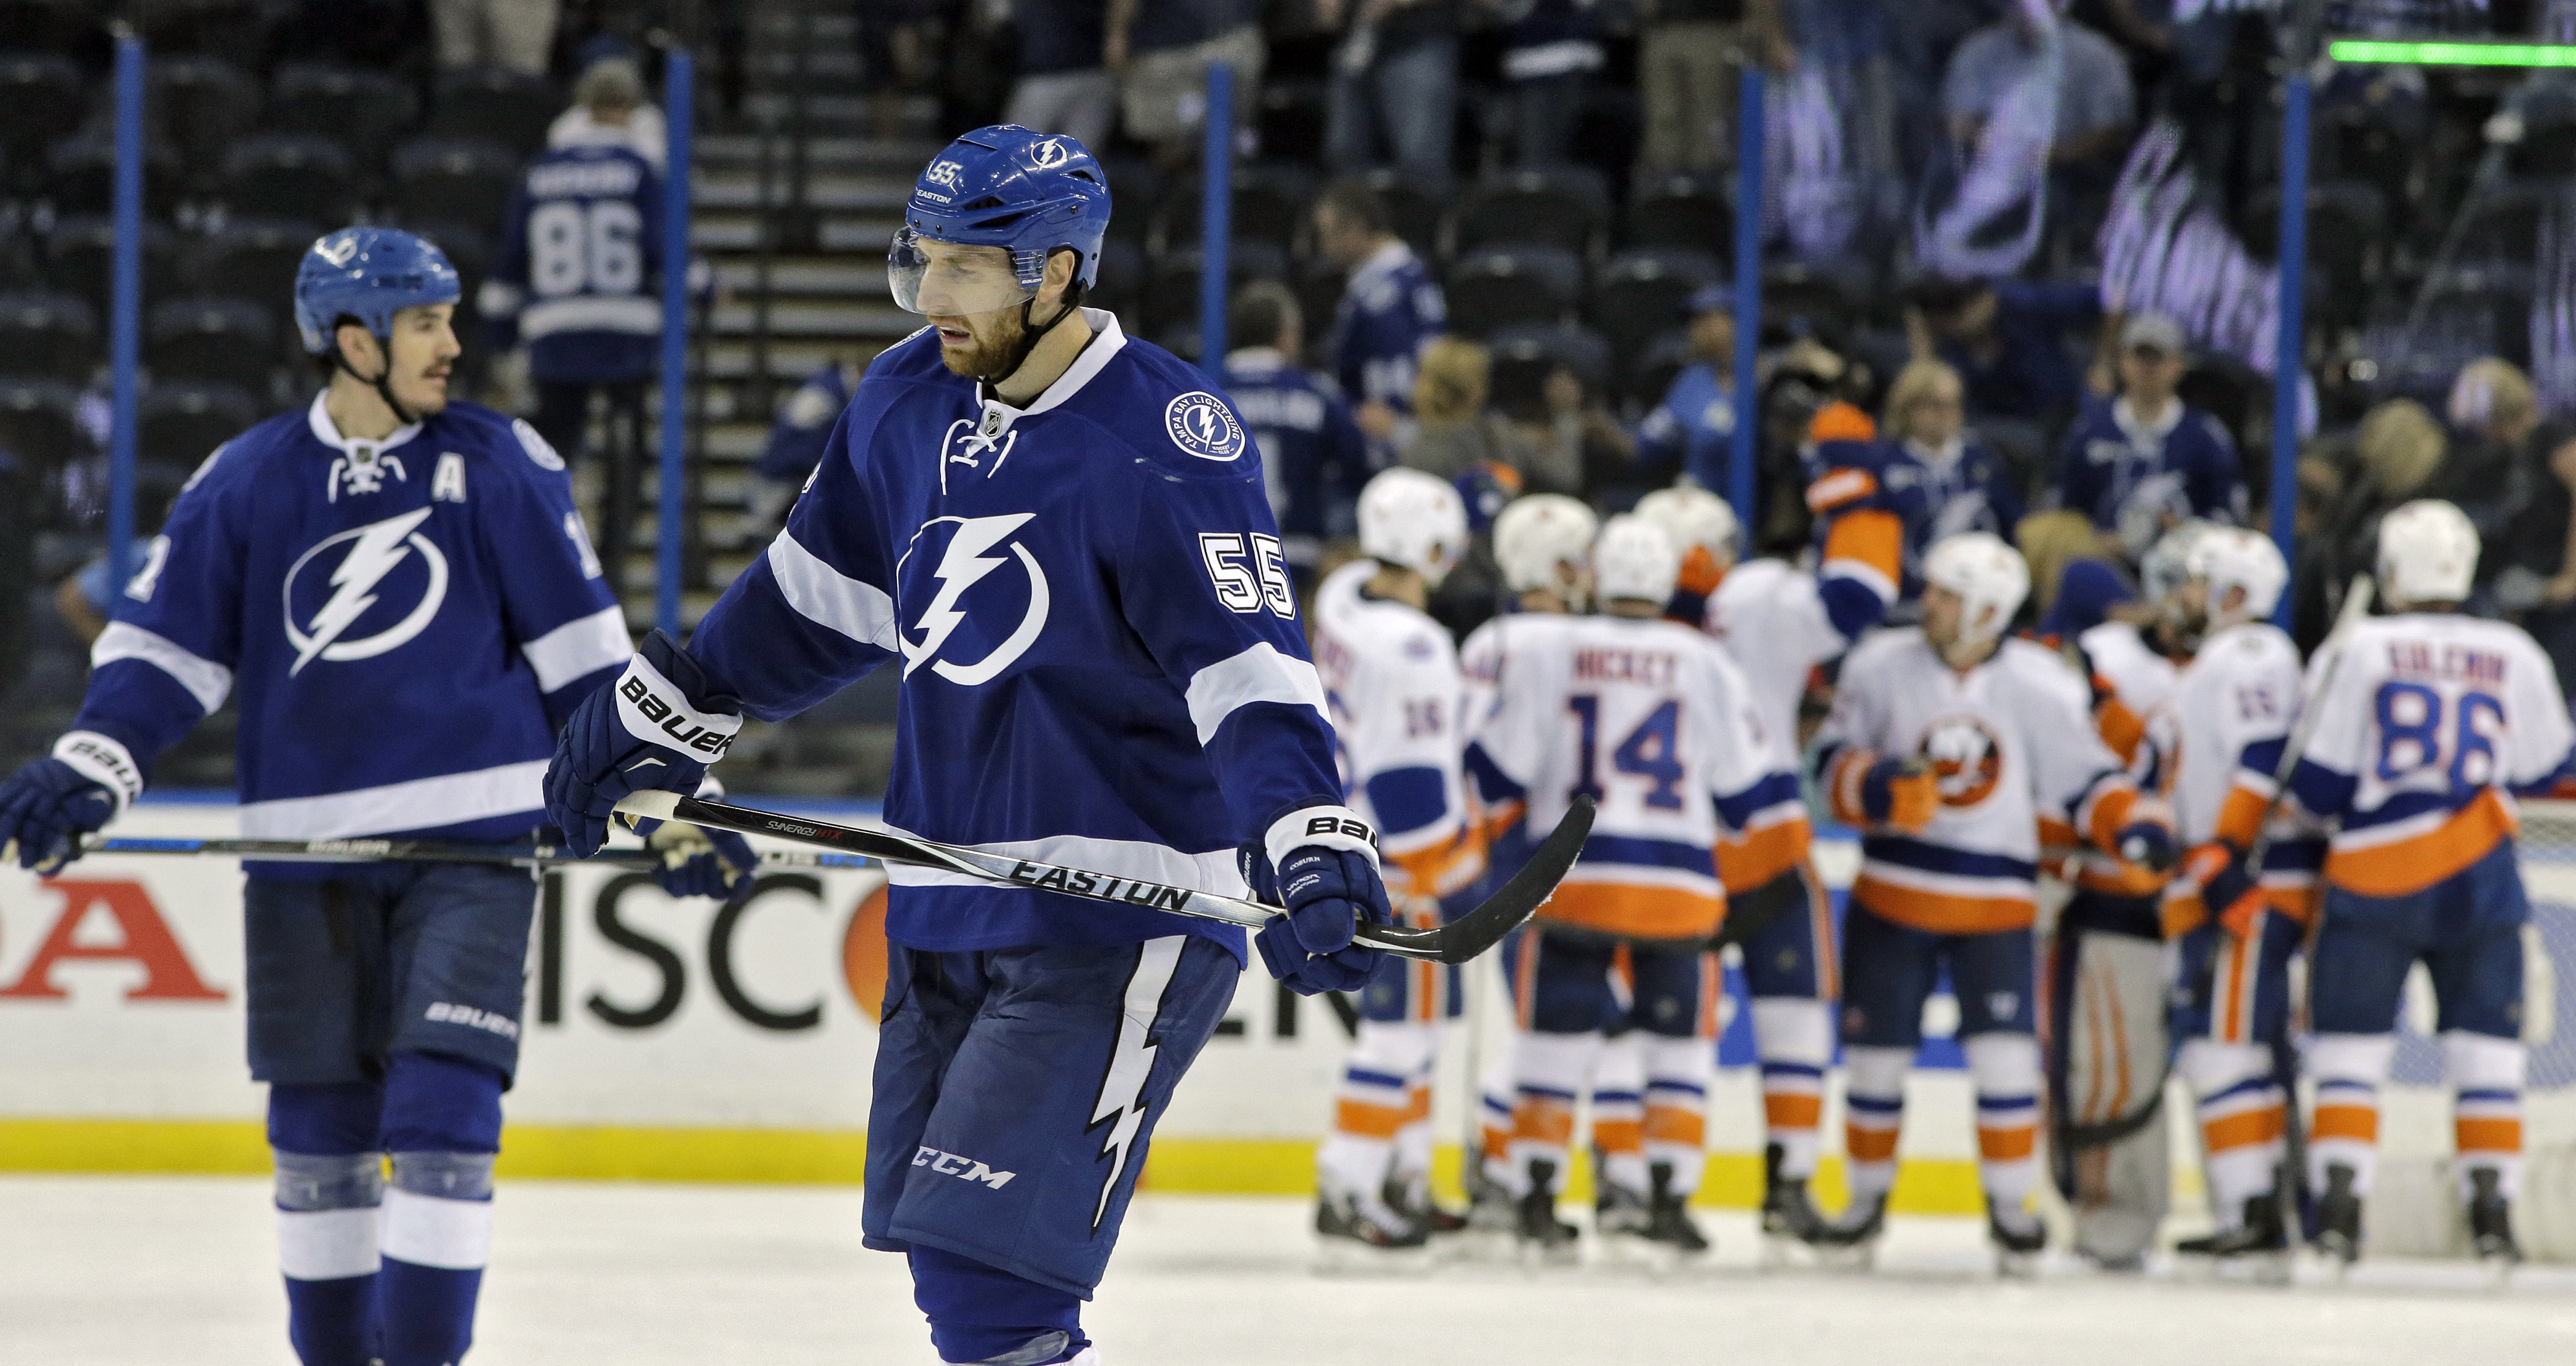 Tampa Bay Lightning center Brian Boyle (11) and defenseman Braydon Coburn (55) skate off as the New York Islanders celebrate a 5-3 win during Game 1 of the NHL hockey Stanley Cup Eastern Conference semifinals Wednesday, April 27, 2016, in Tampa, Fla. (AP